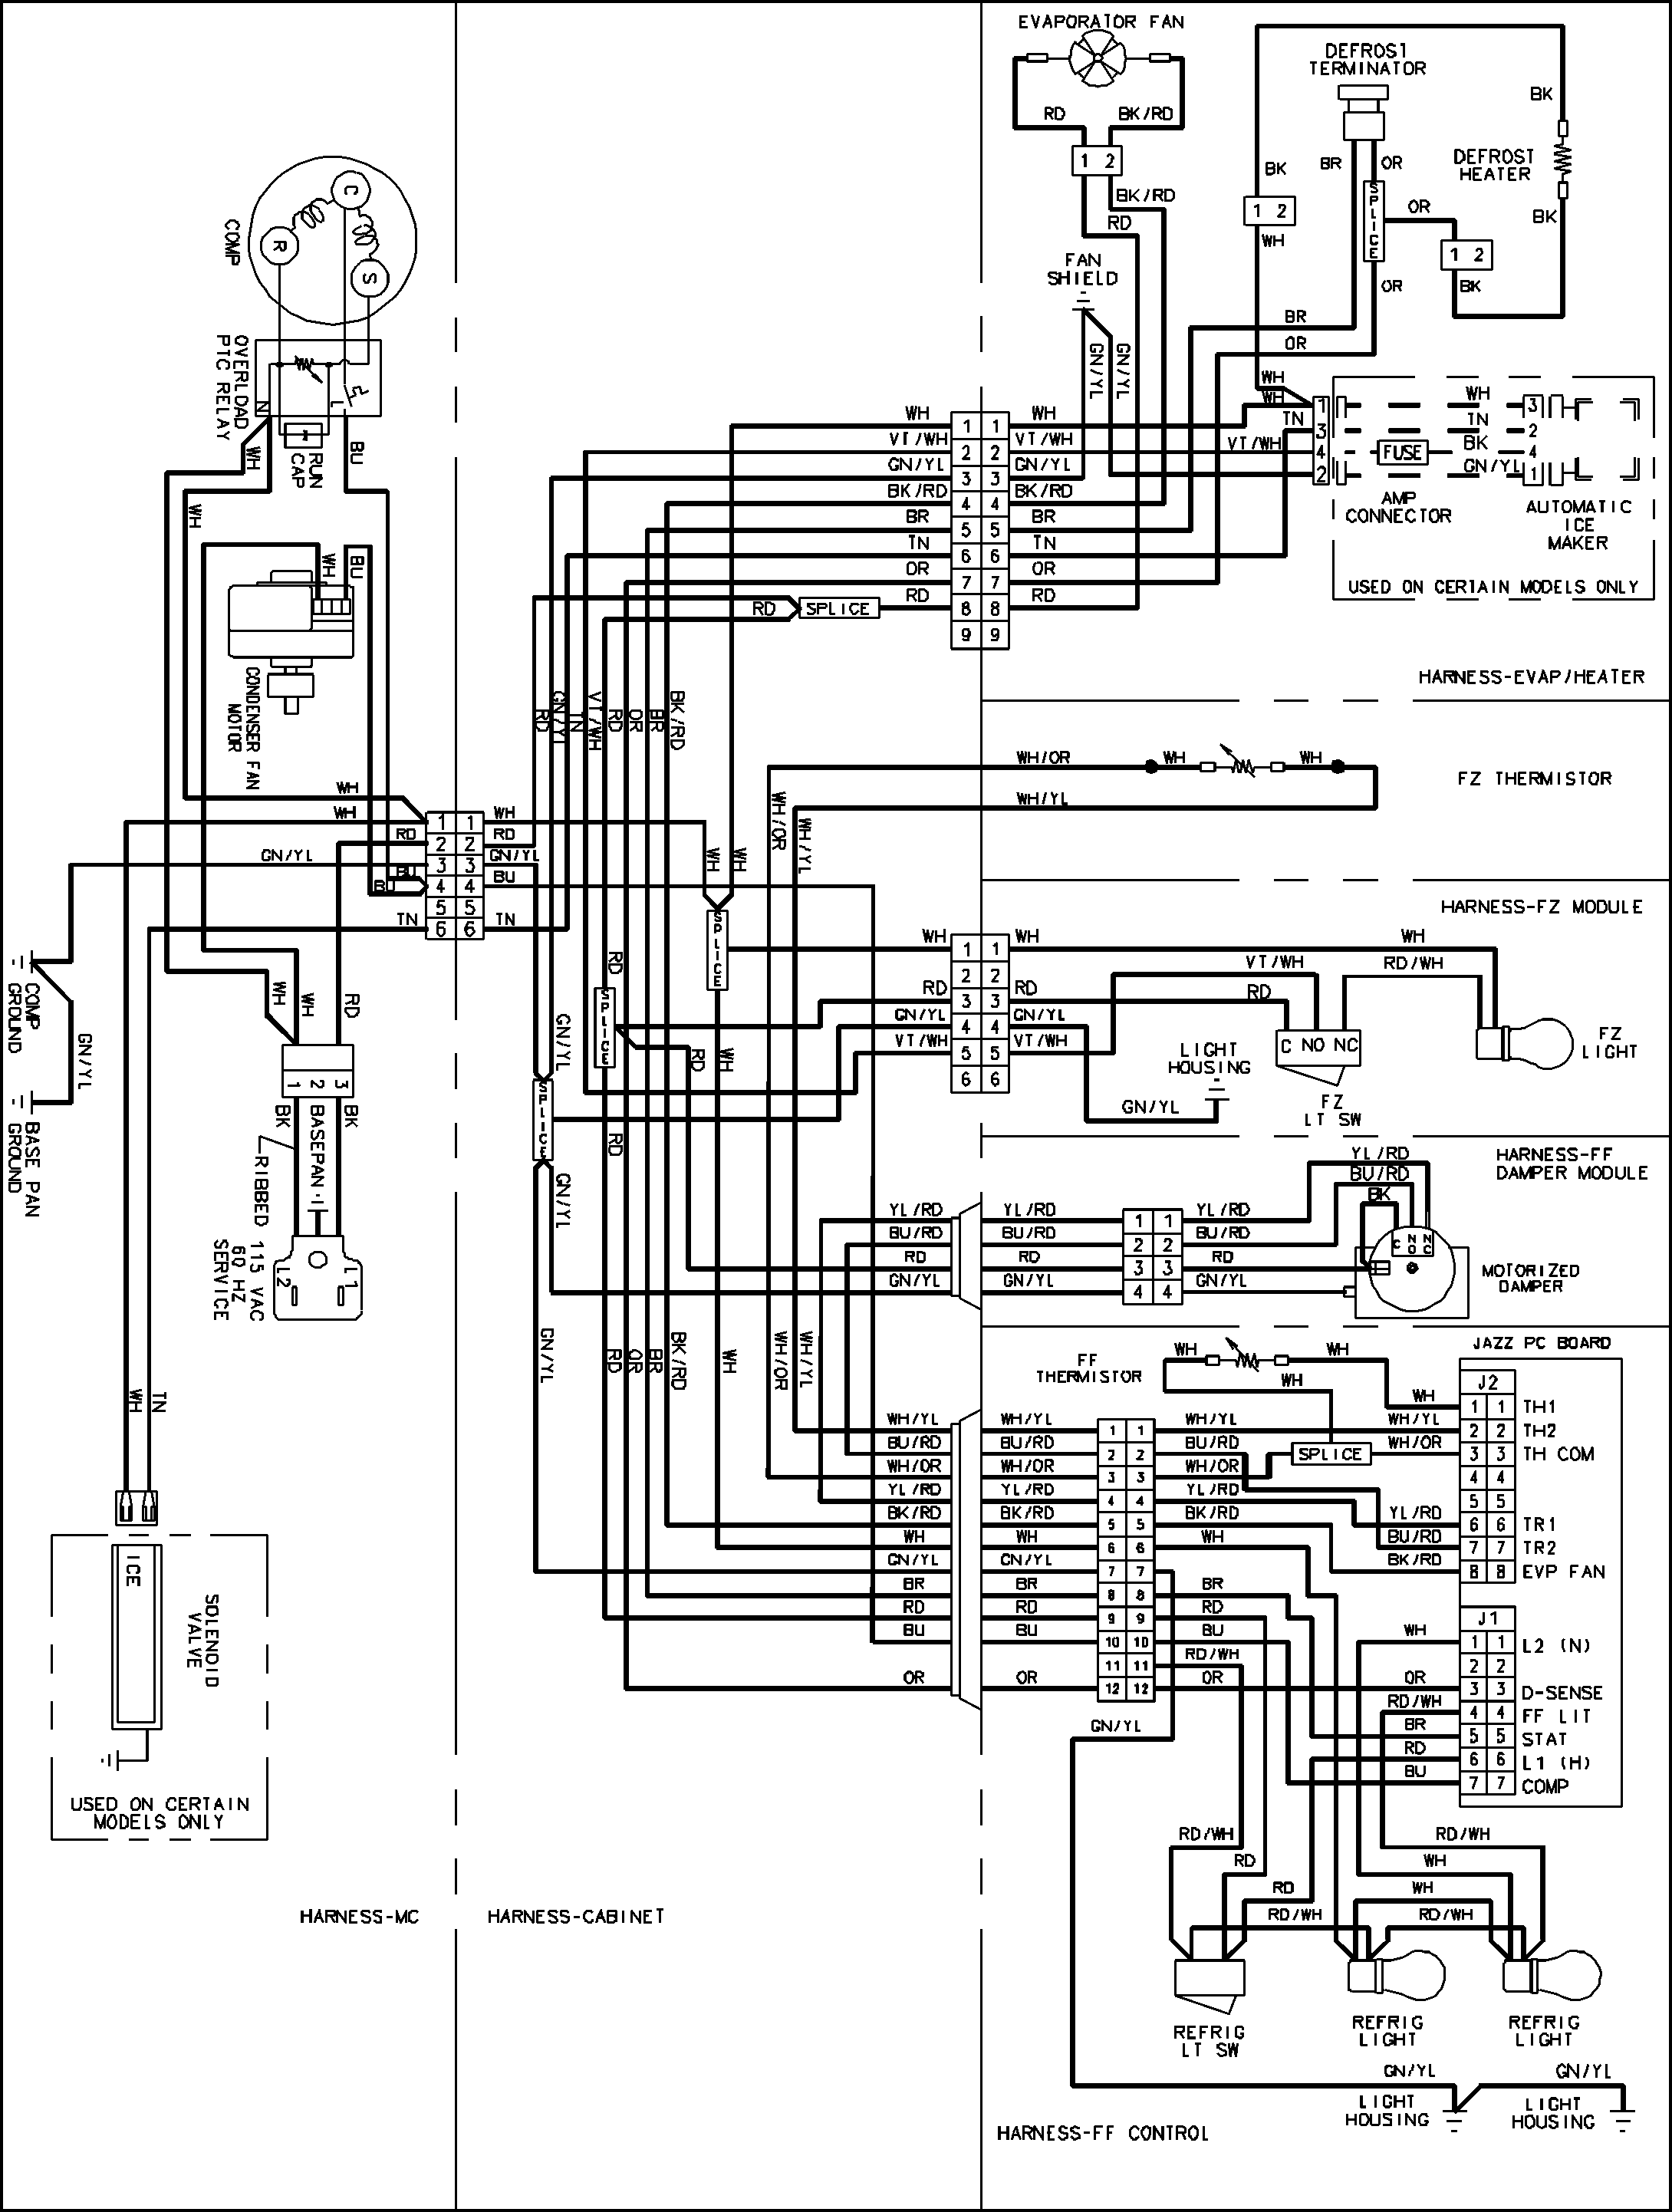 M0703075 00011?resize\\\=665%2C879 de303 wiring diagram wiring diagrams Basic Electrical Wiring Diagrams at edmiracle.co